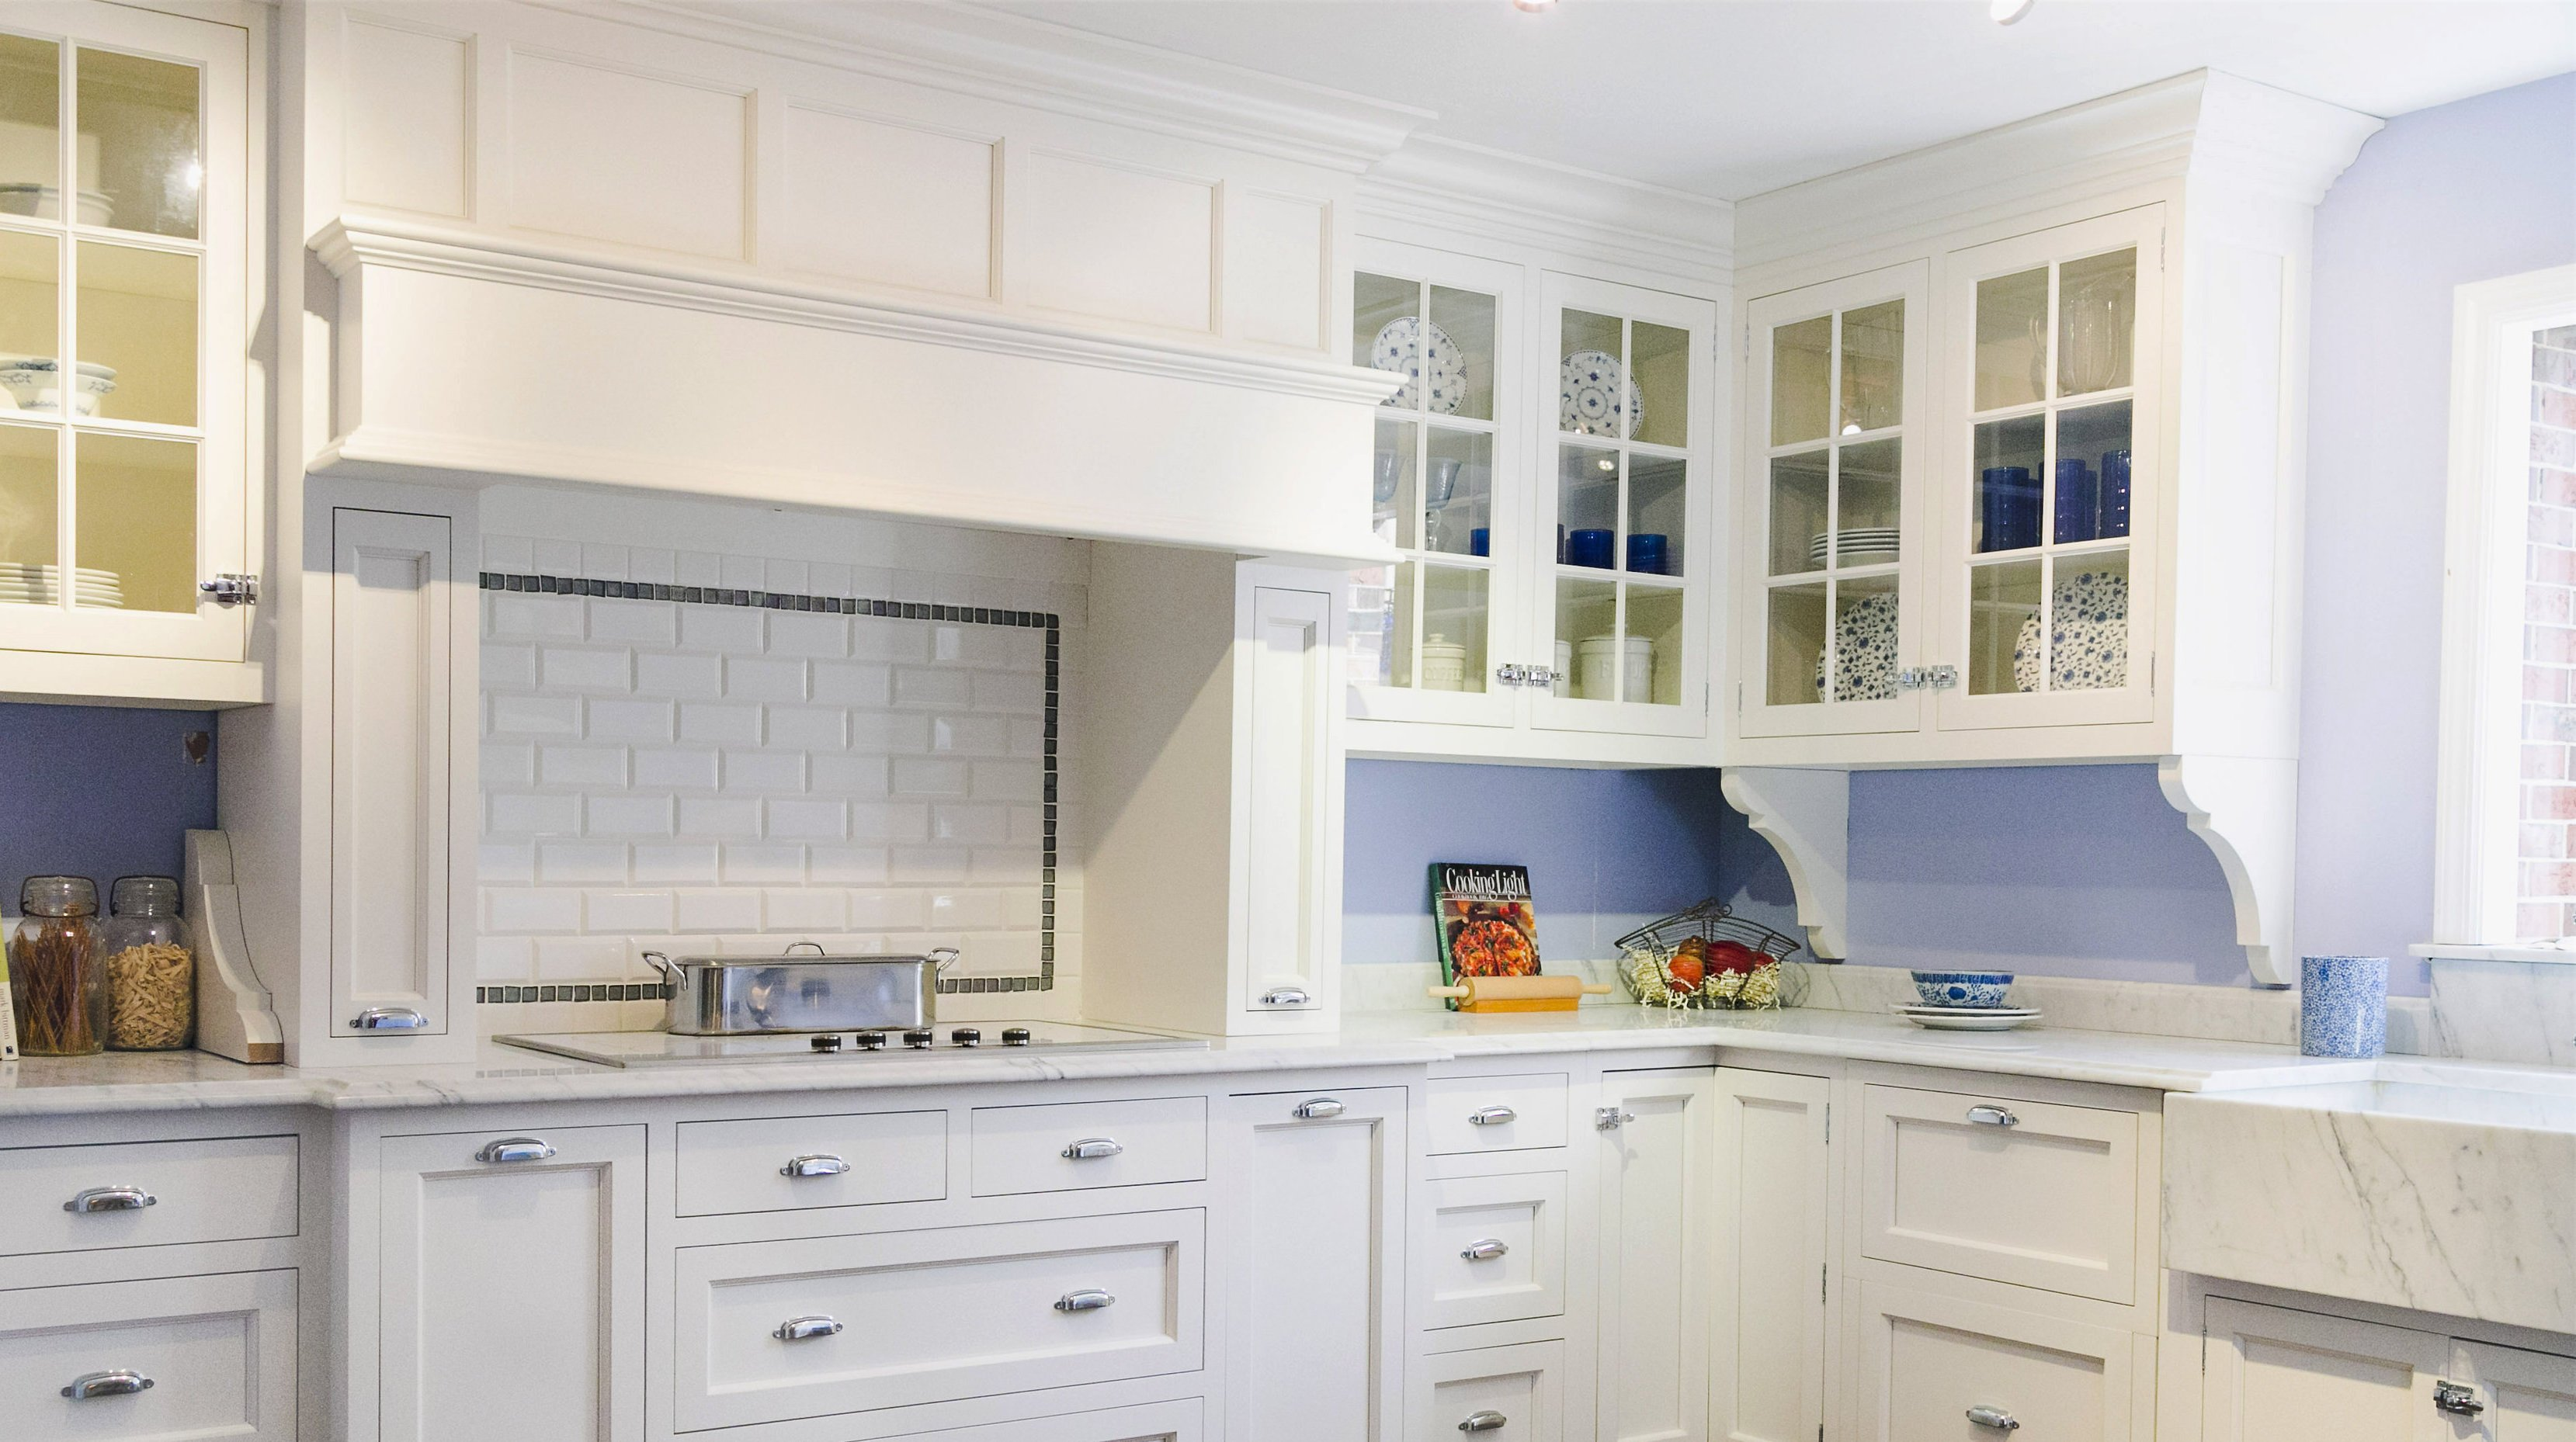 About Our Kitchen and Bathroom Design Company in Maine | Castle Kitchens